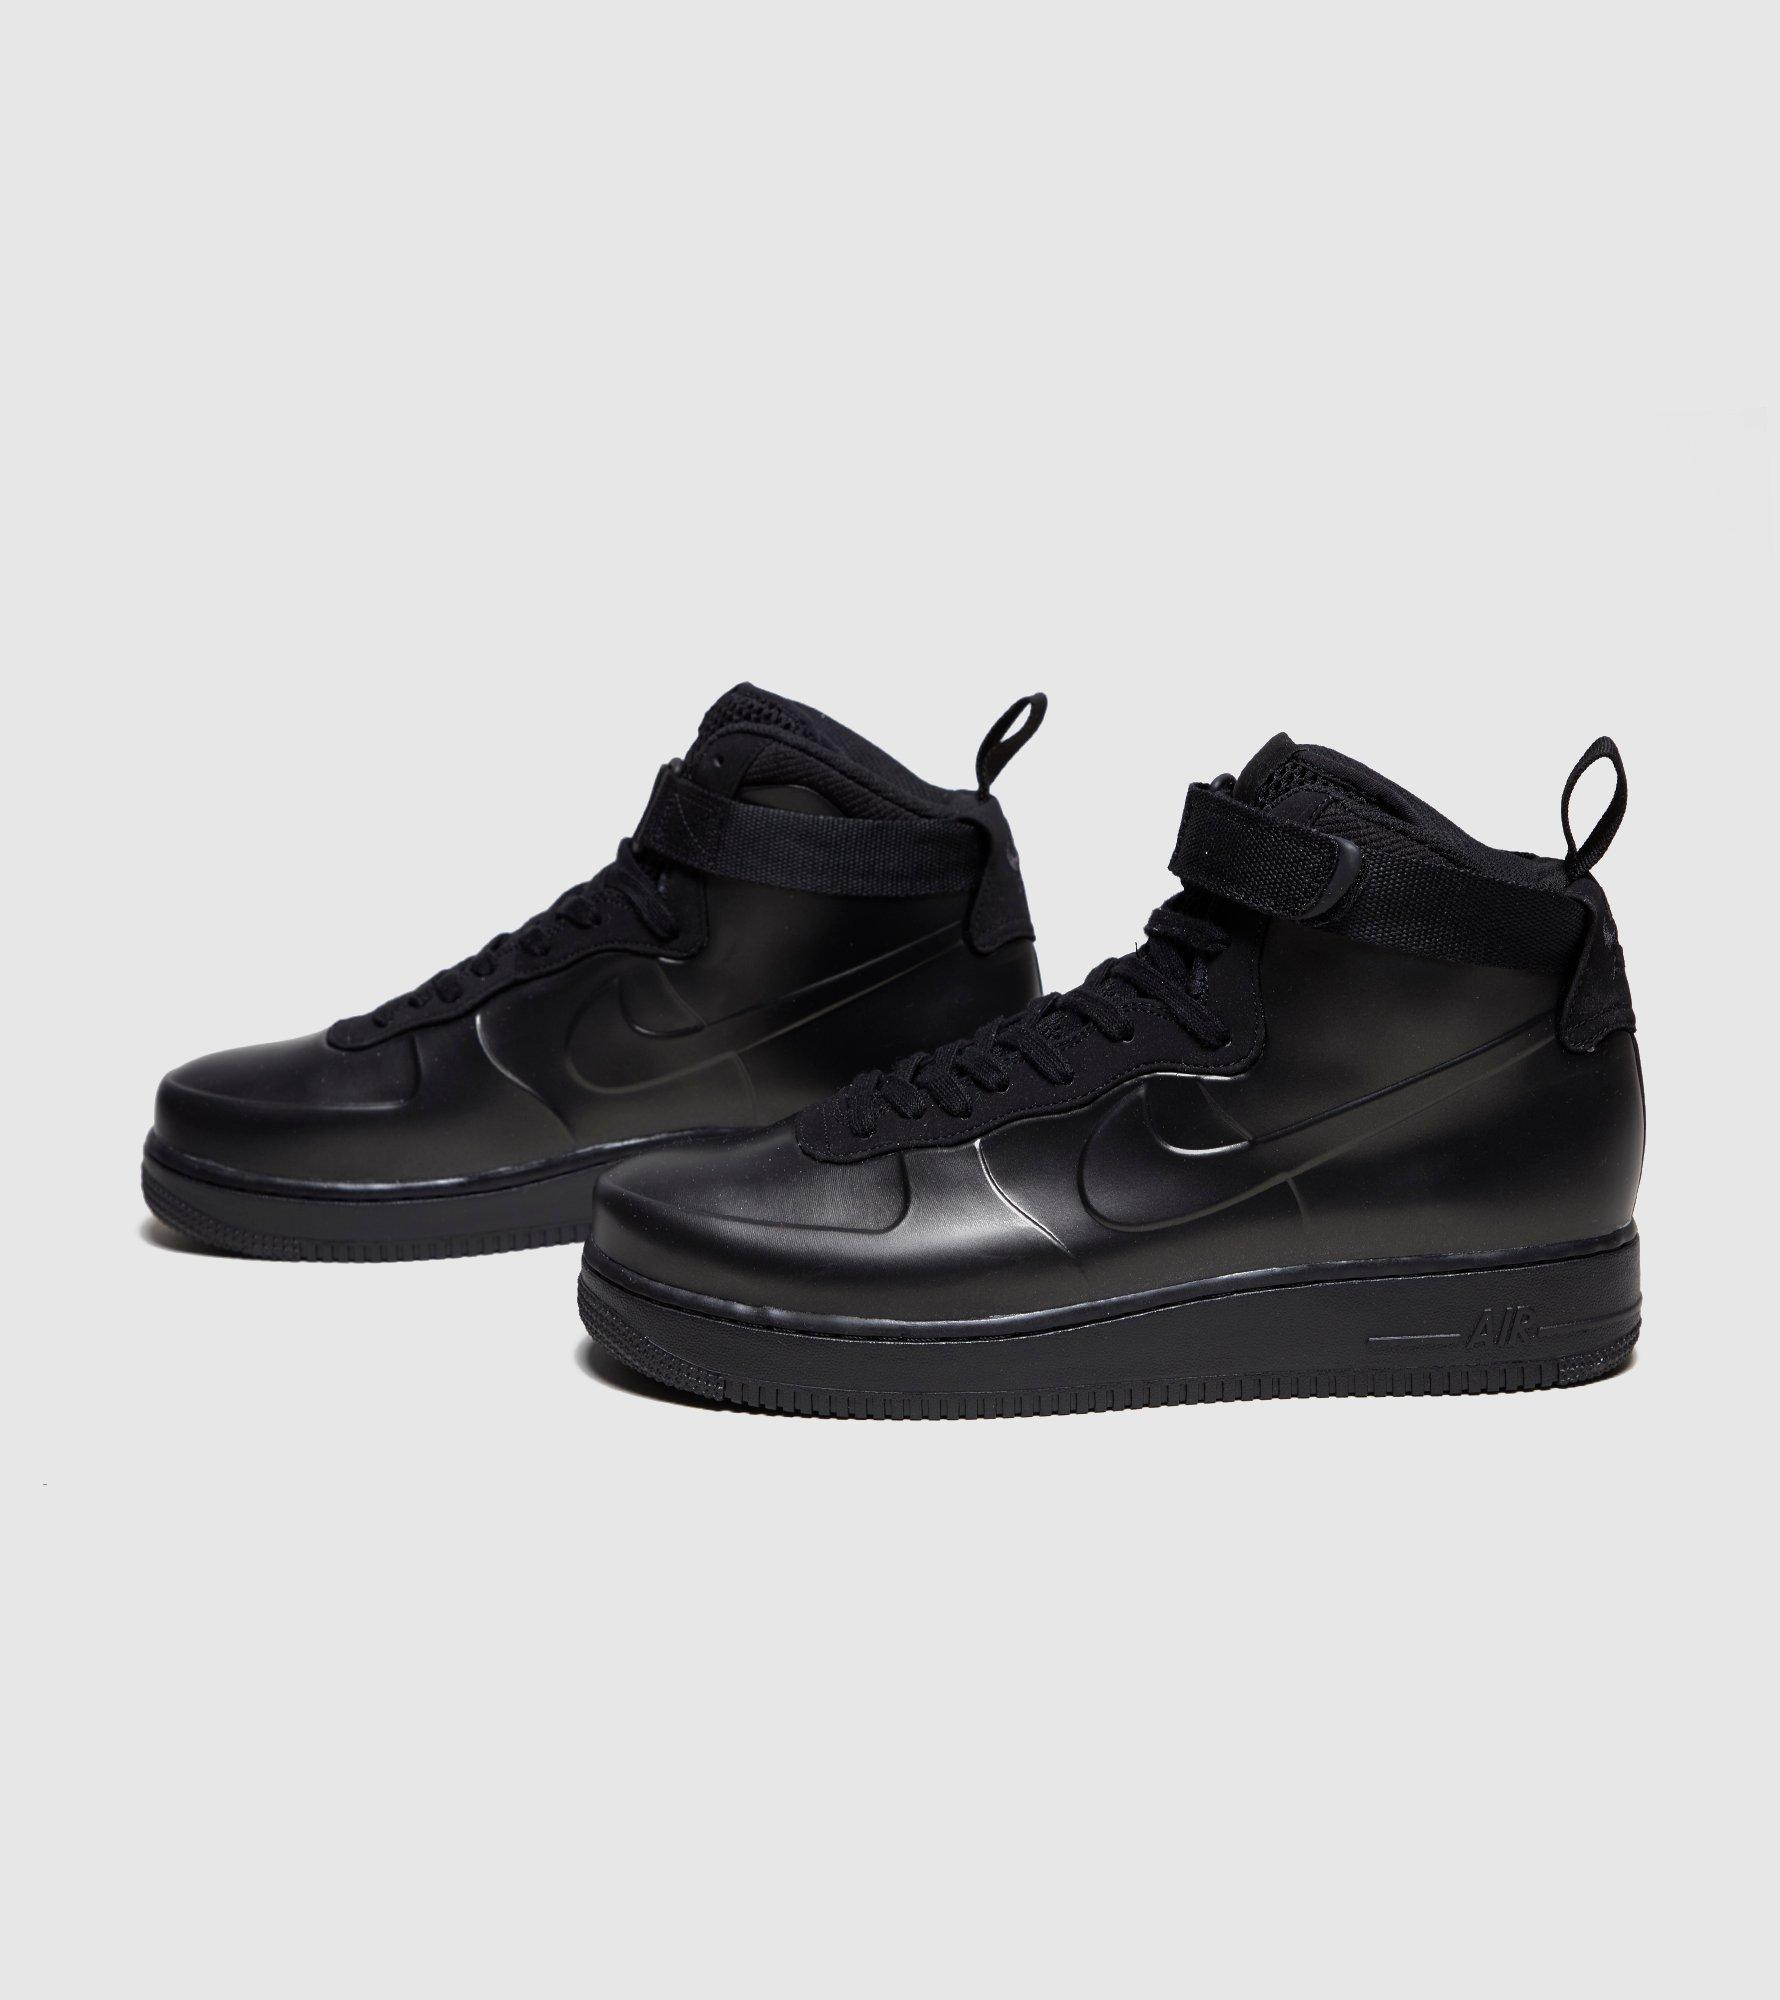 b101fb75b60cc Lyst - Nike Air Force 1 Foamposite Cup in Black for Men